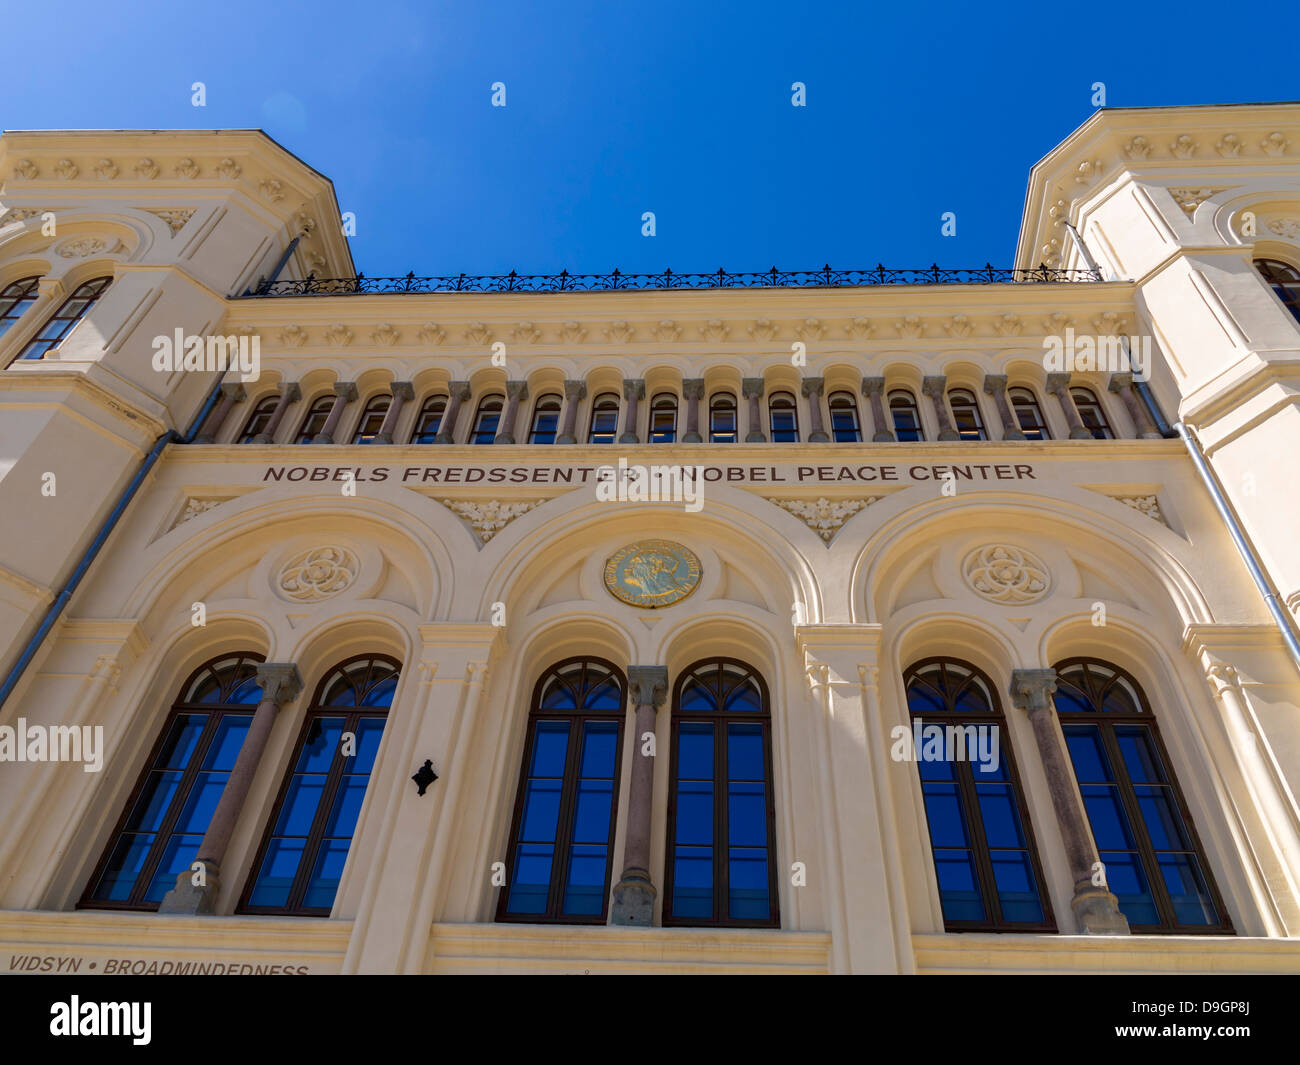 The Nobel Peace Centre in Oslo, Norway, Europe - Stock Image